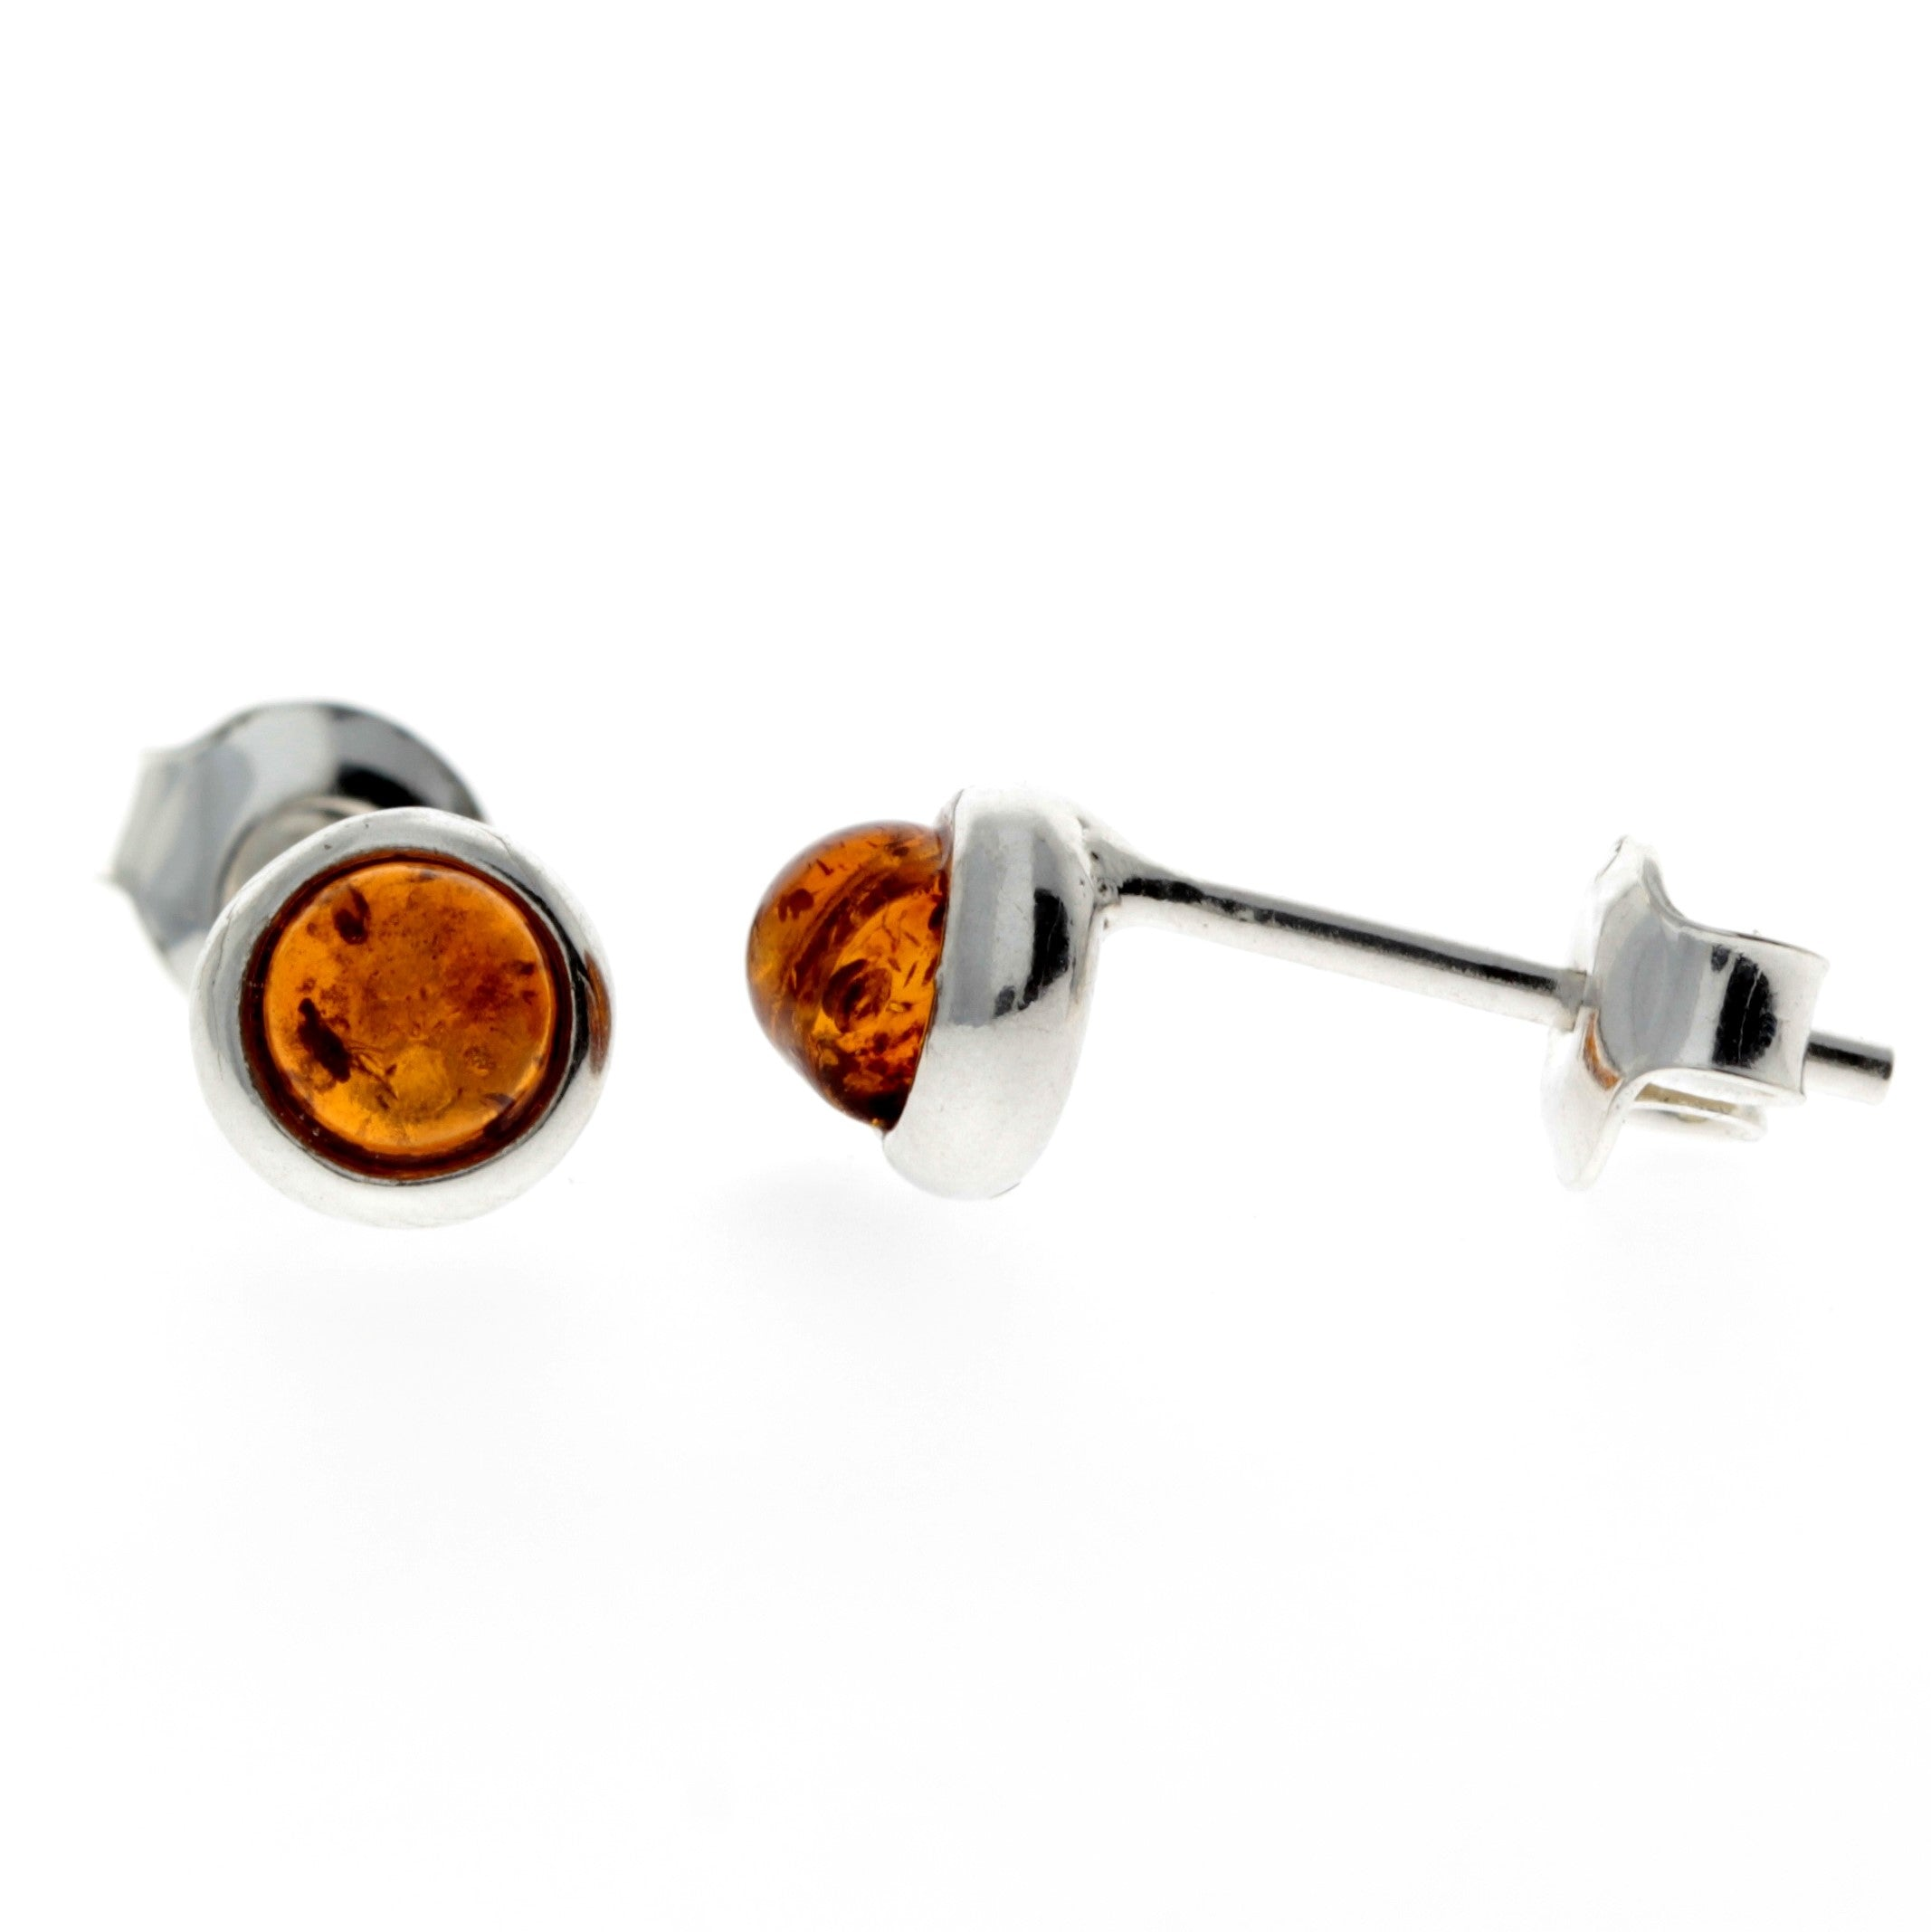 925 Sterling Silver & Baltic Amber Studs Earrings - K088